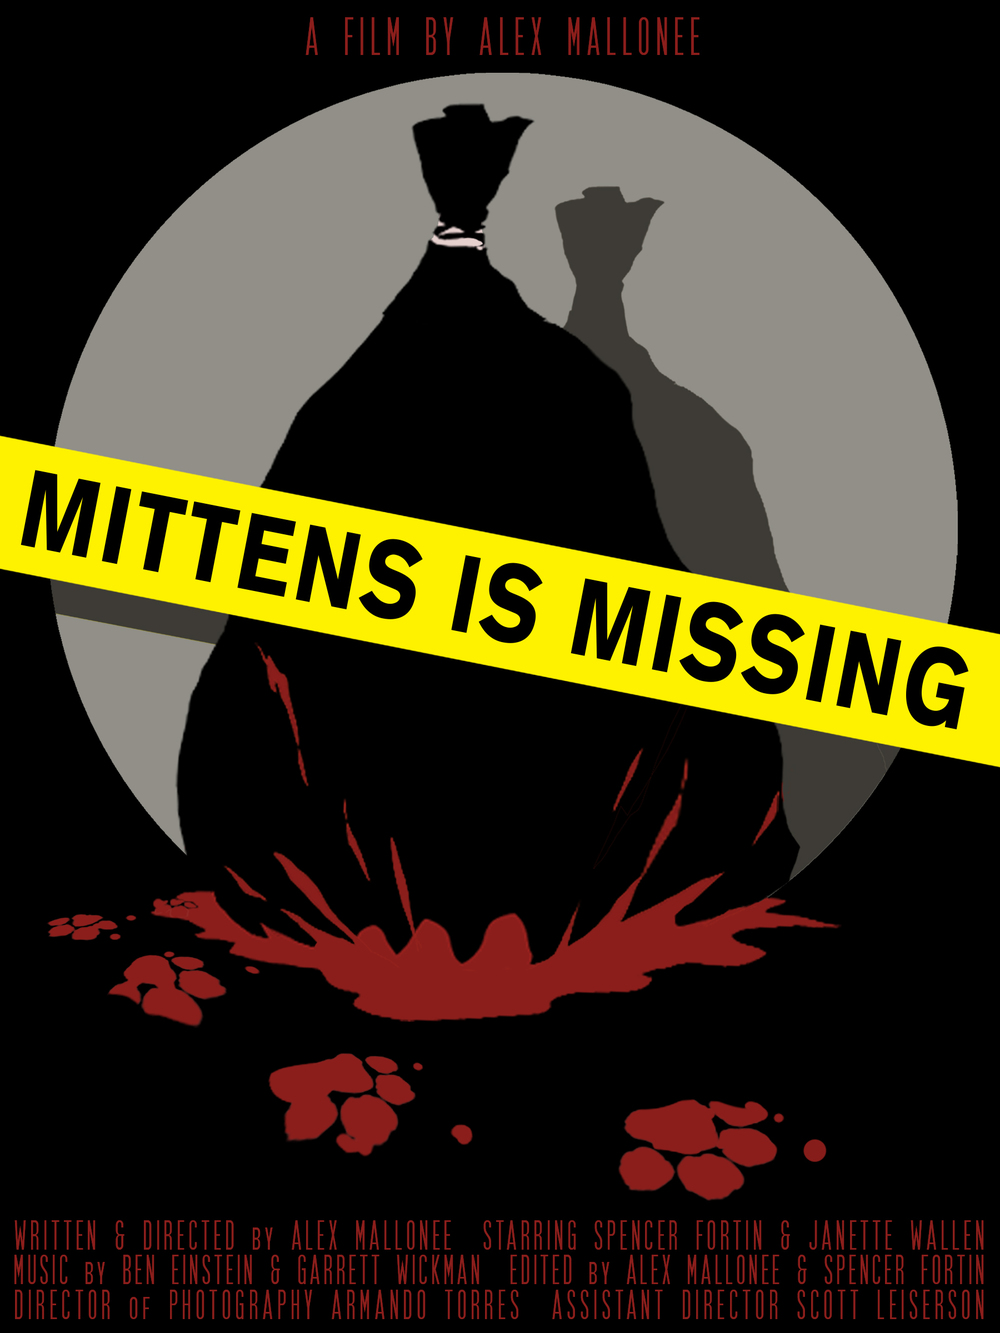 Mittens Is Missing - Official Poster by Cody Blocker